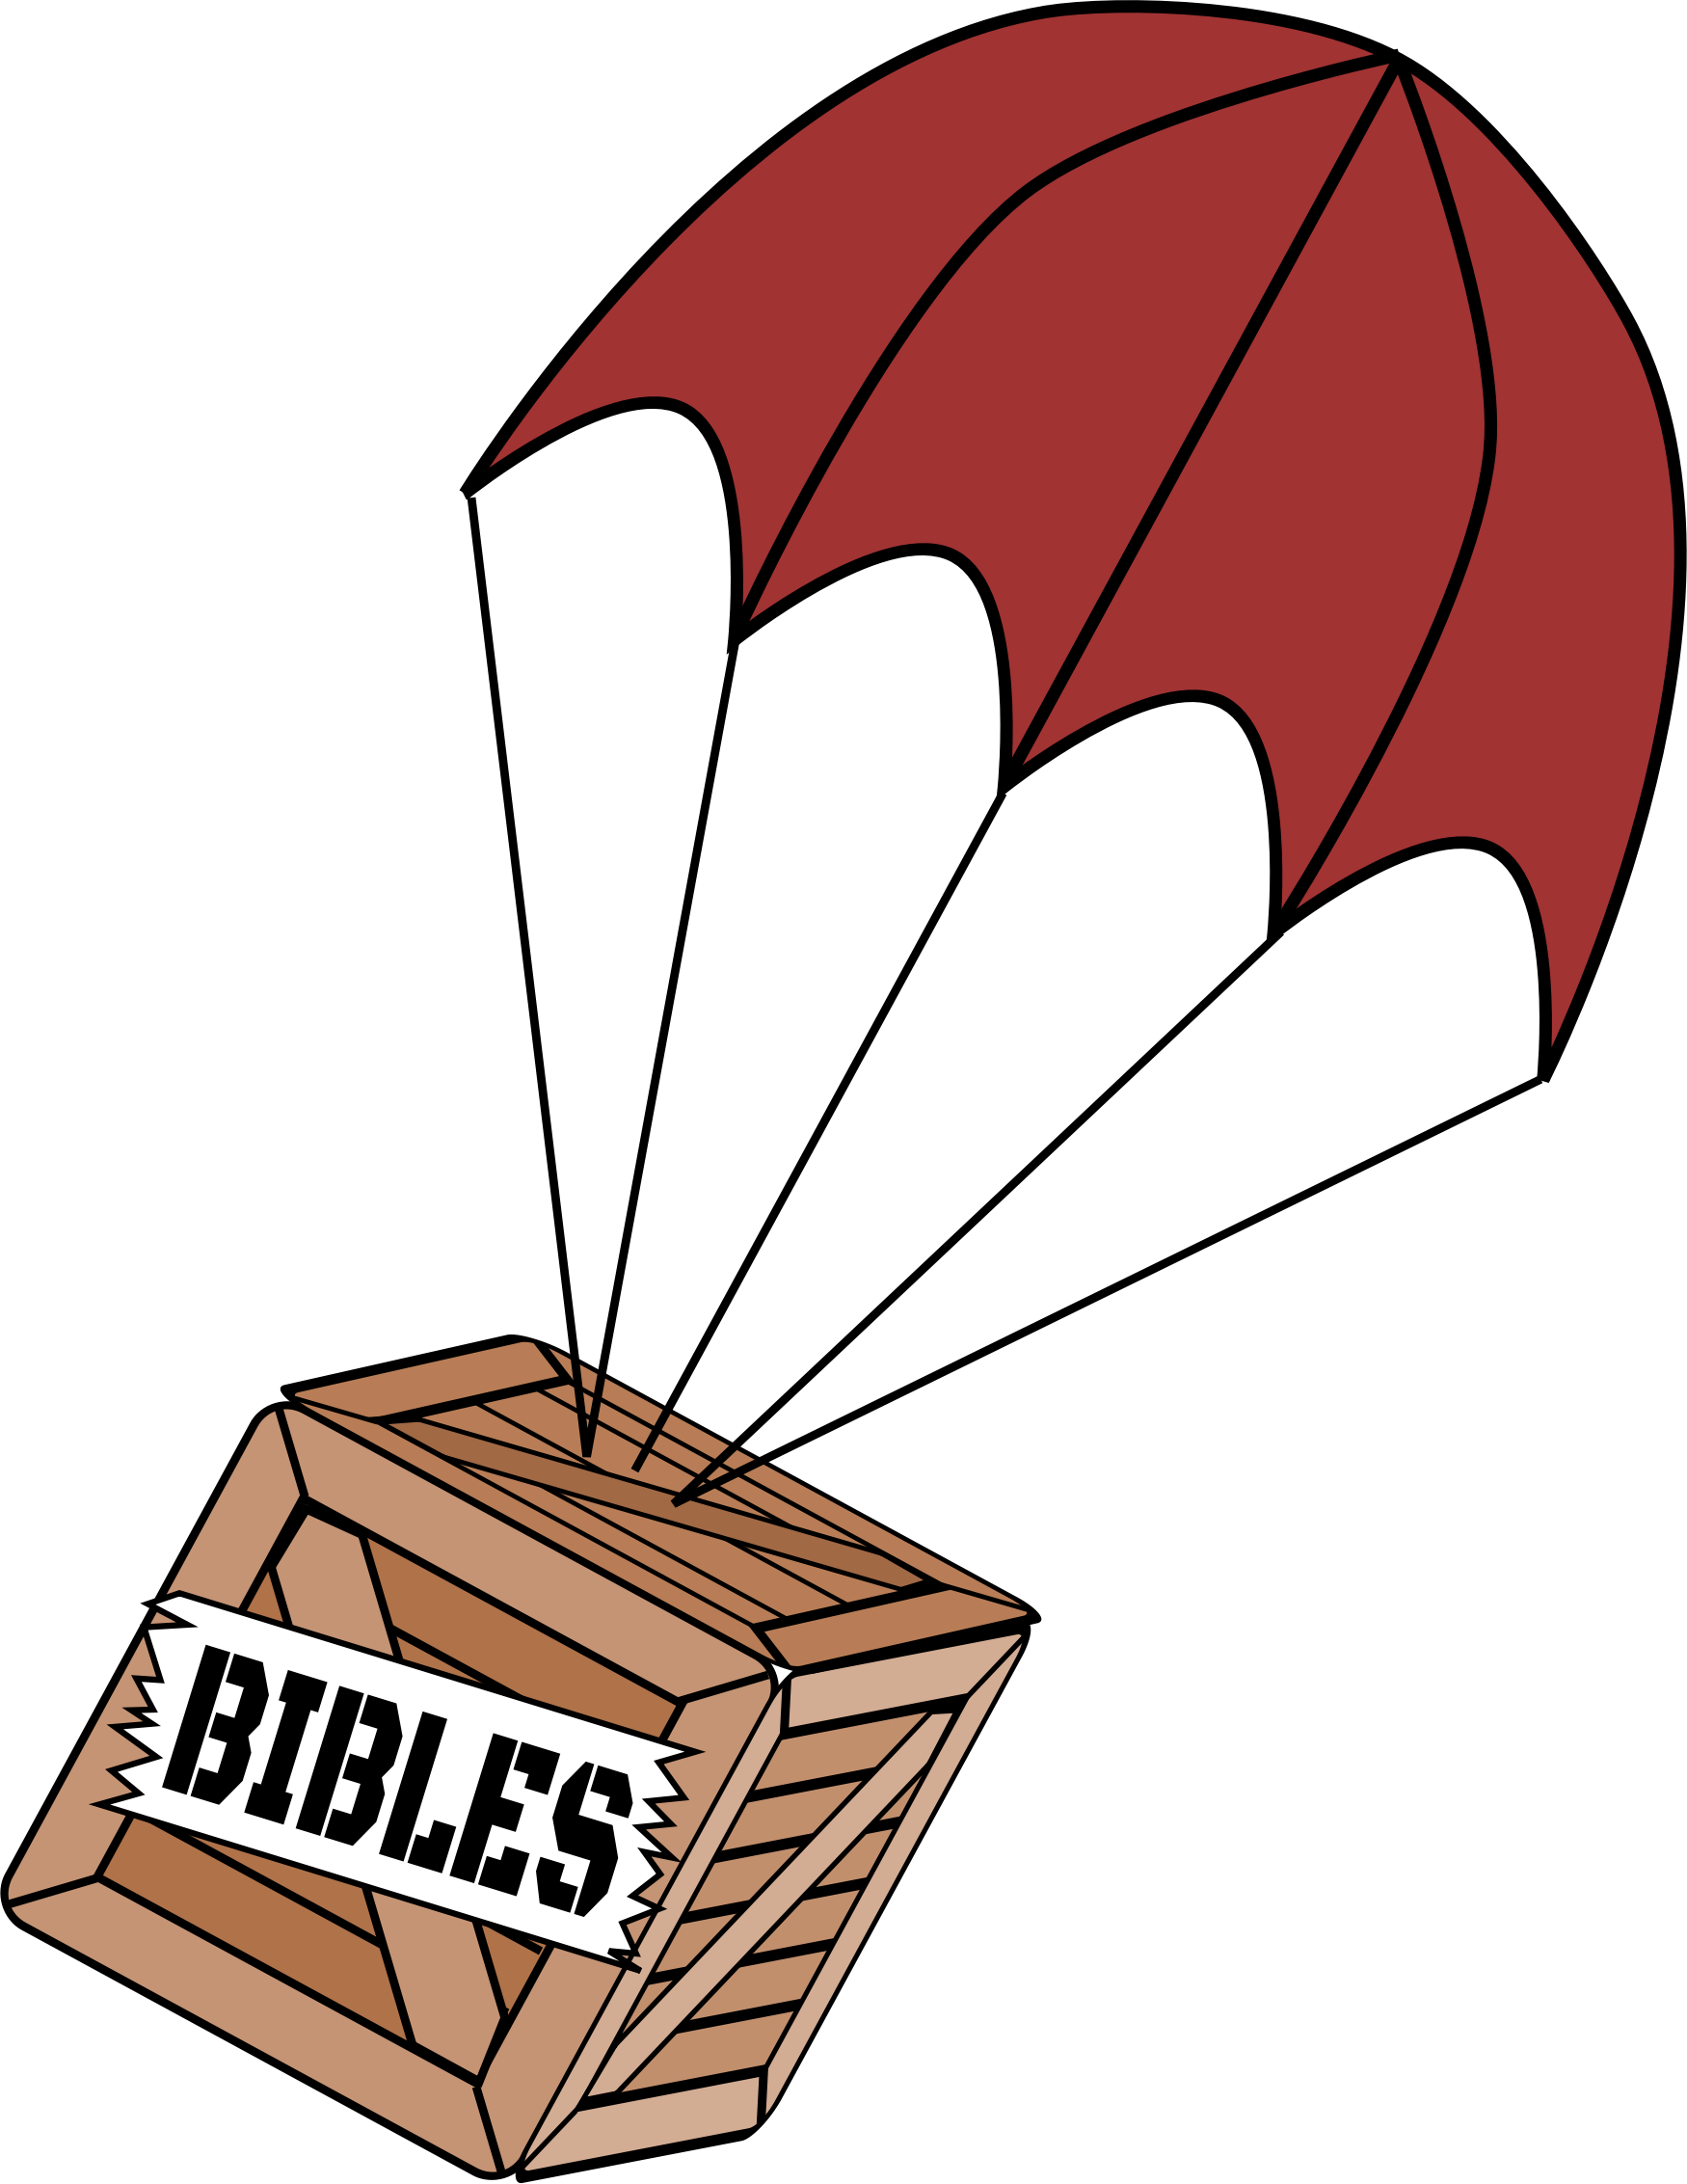 Parachute vector png. On box of bibles